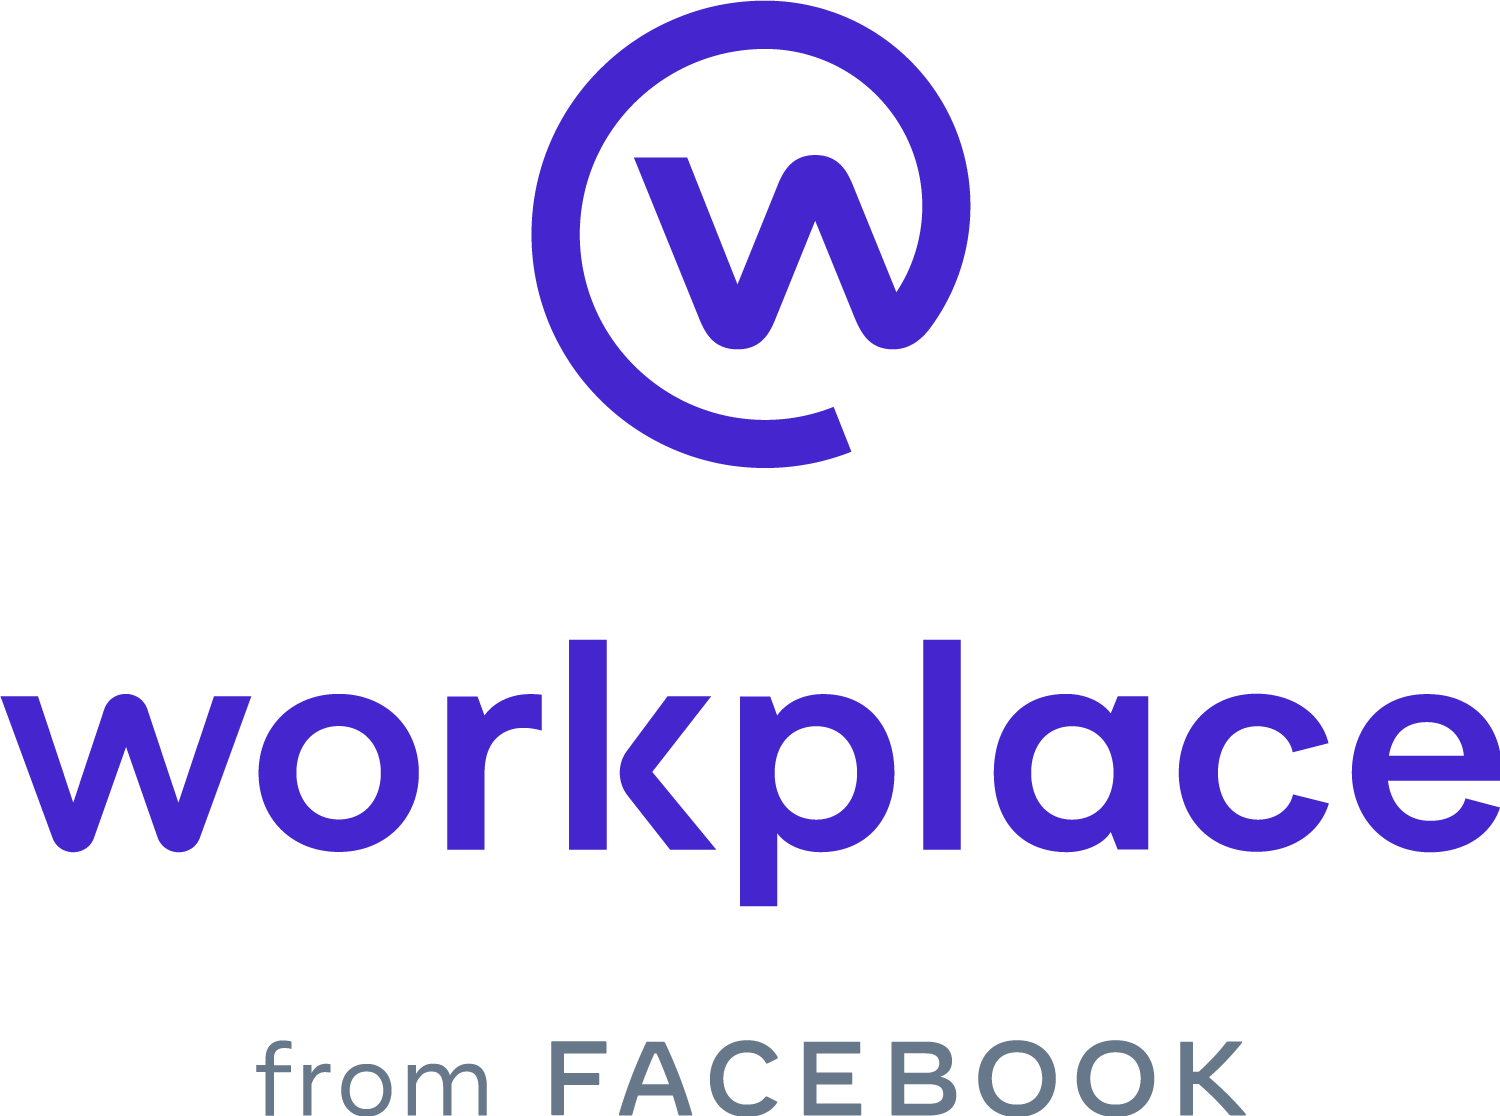 Workplace from Facebook logo